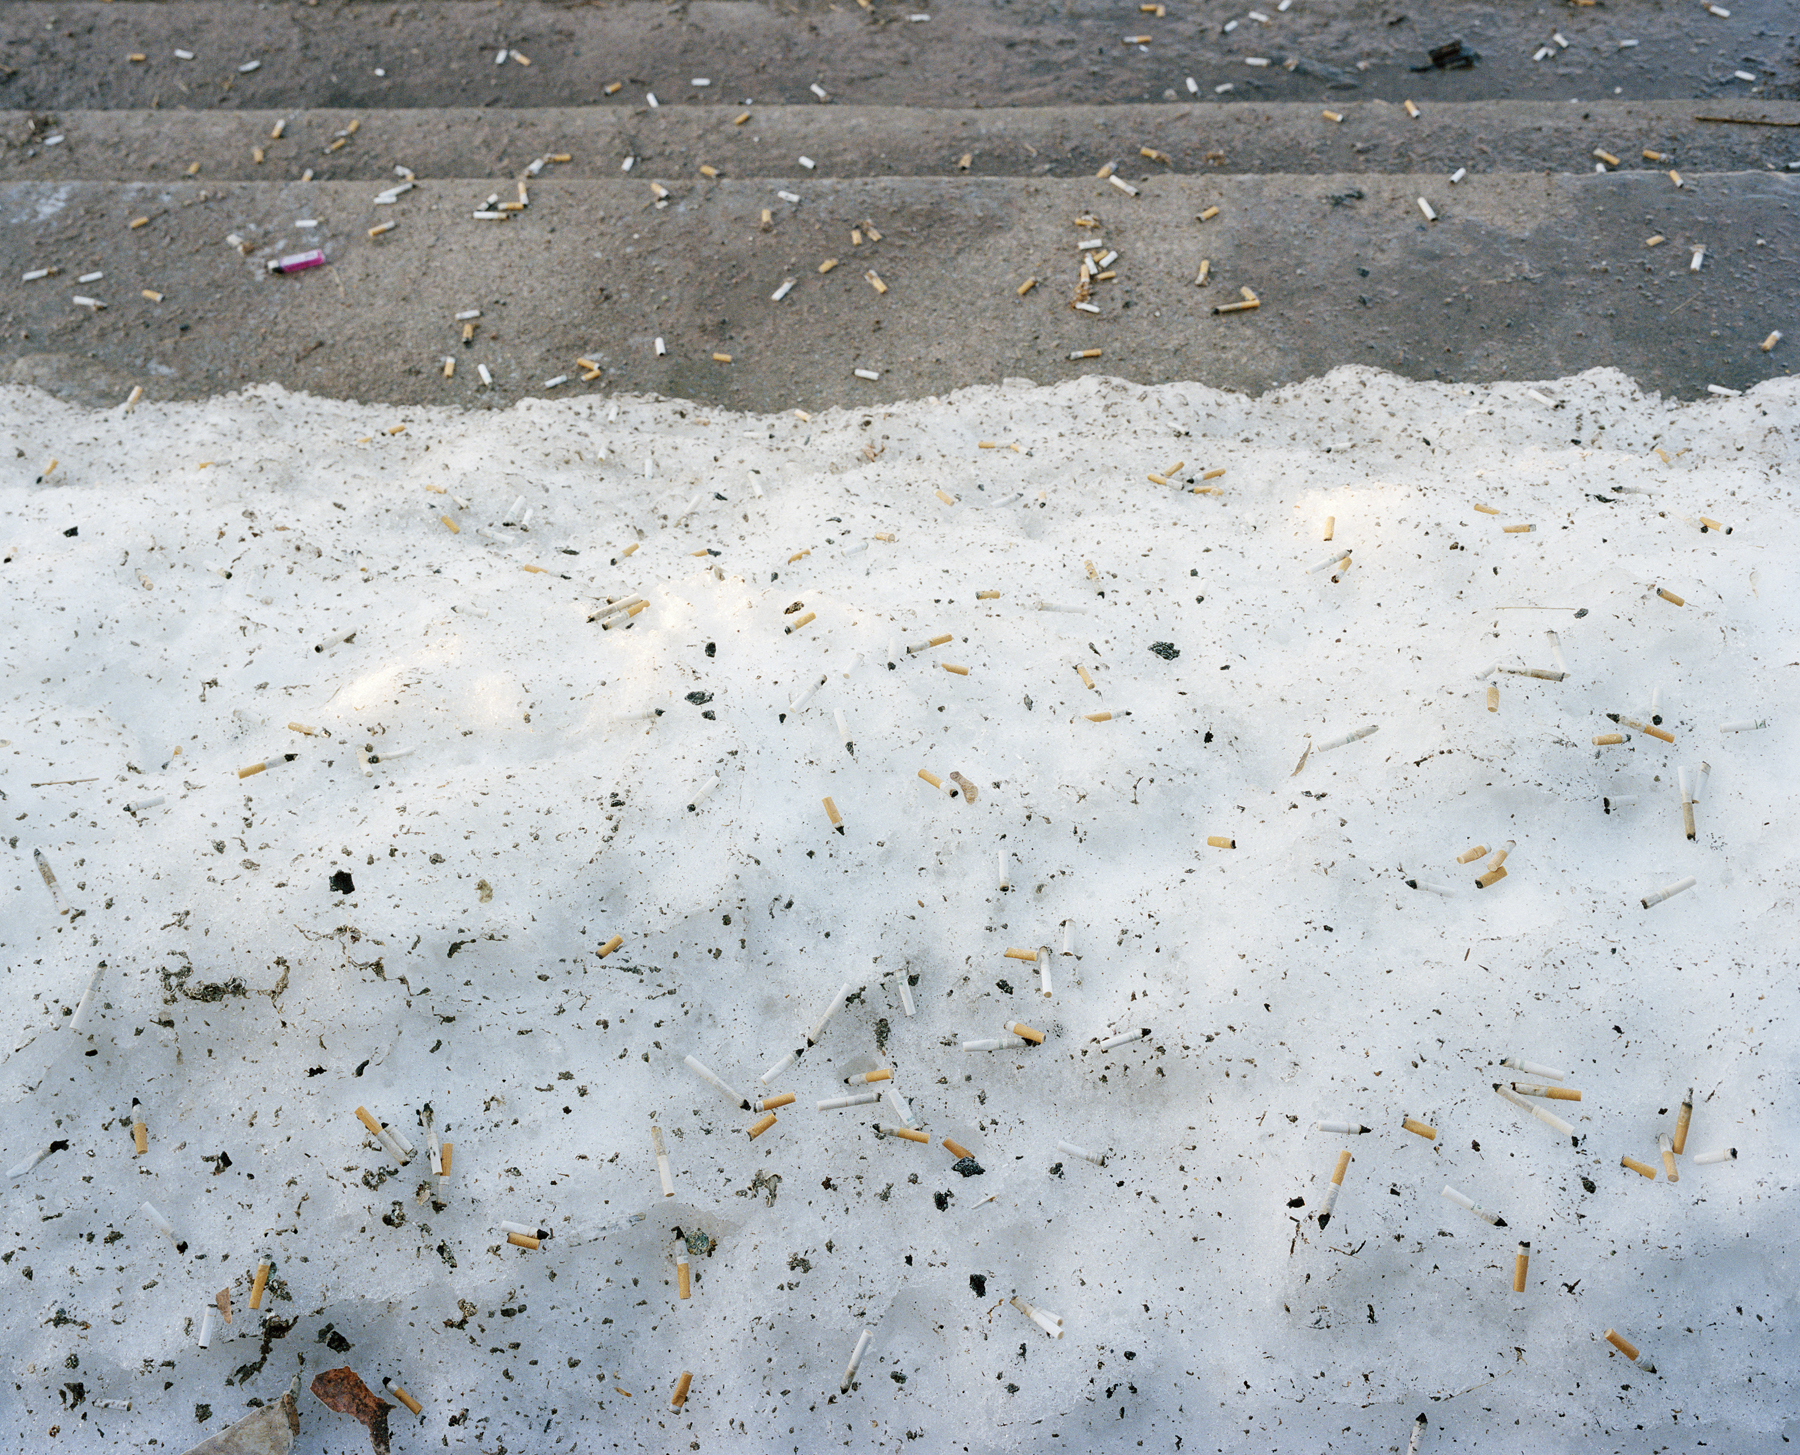 Rebecca Soderholm Cigarette Butts on Sunday Morning, Cleveland, NY, 2007 Ink jet print 9.5 x 11.75 or 16 x 19 inches